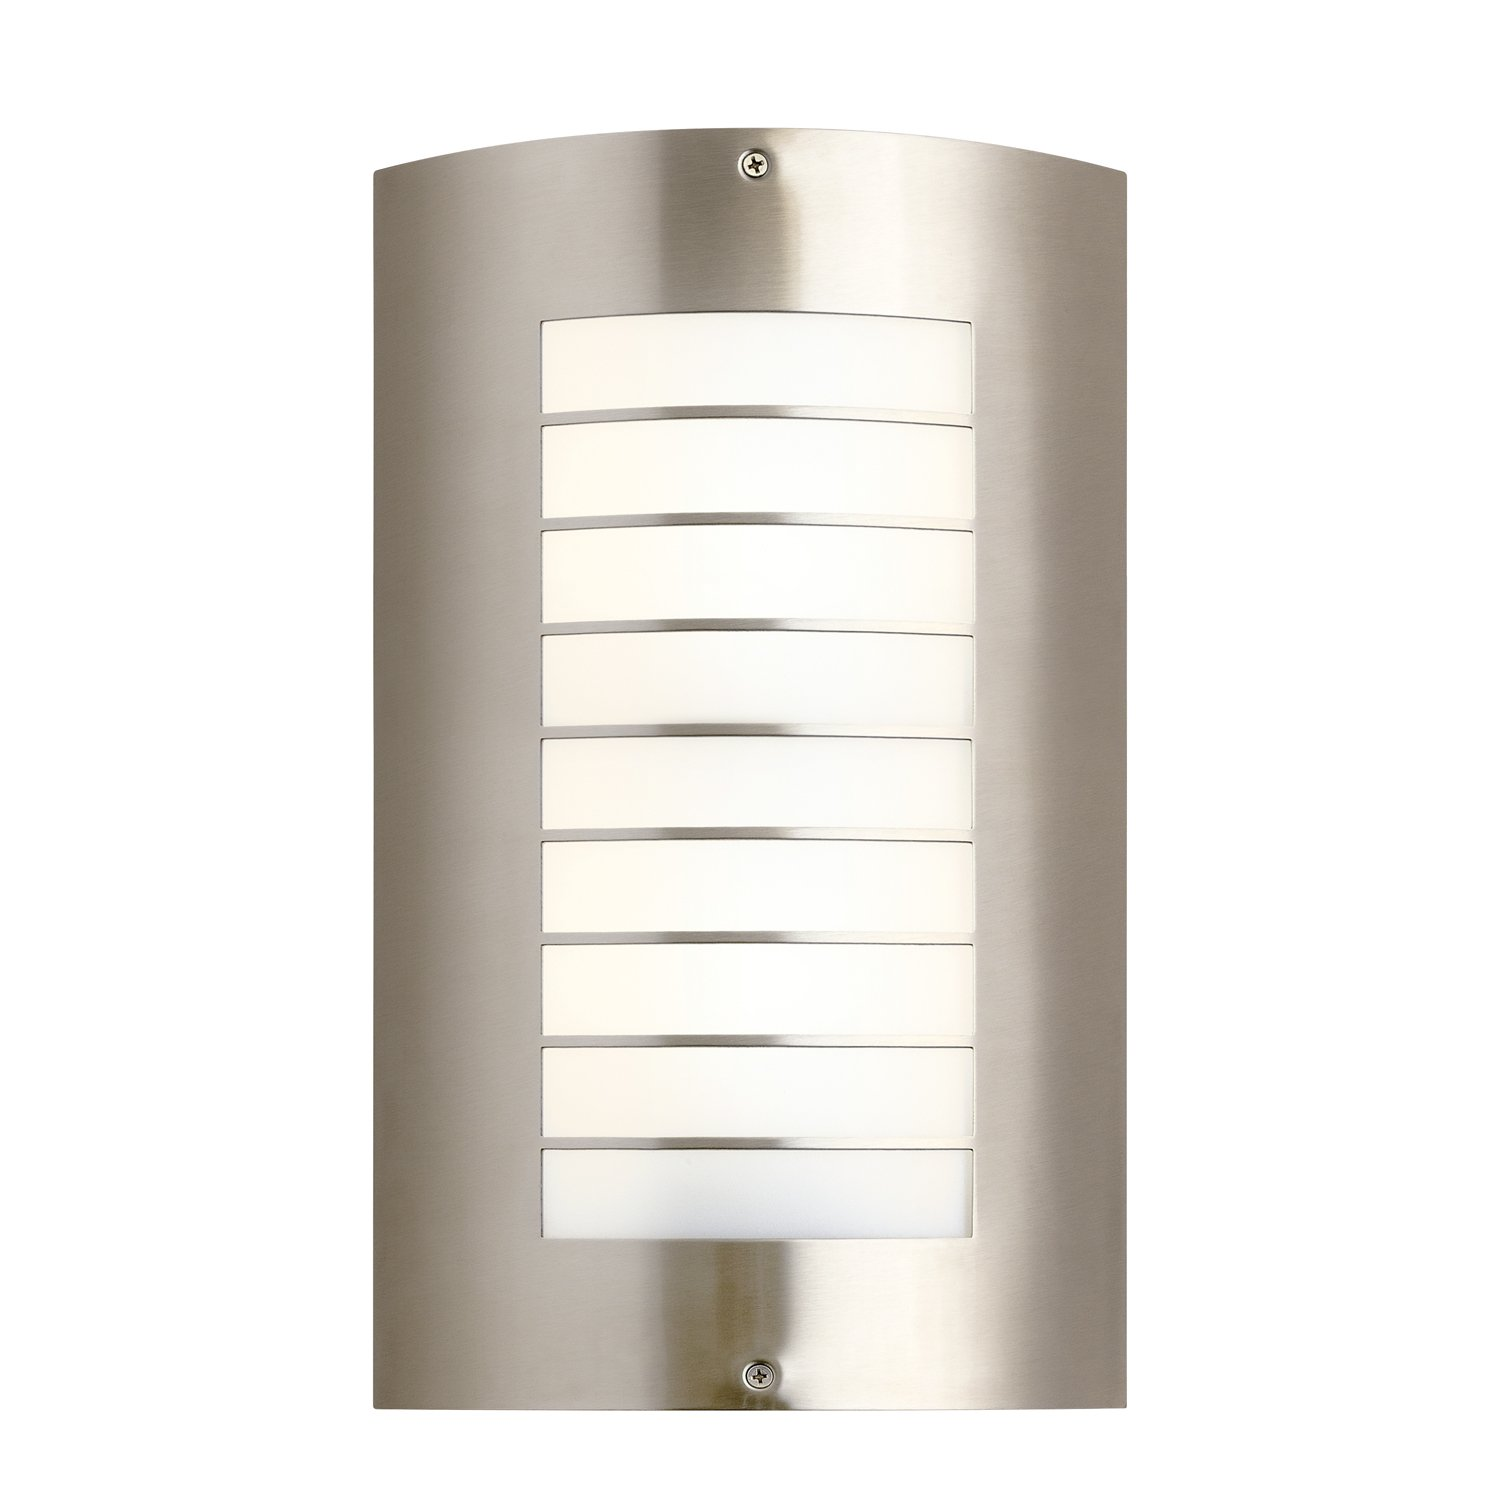 Kichler 6040NI  Modern 1 Light Outdoor Wall Light  Brushed Nickel   Wall  Porch Lights   Amazon comKichler 6040NI  Modern 1 Light Outdoor Wall Light  Brushed Nickel  . Kichler Lighting Outdoor Sconce. Home Design Ideas